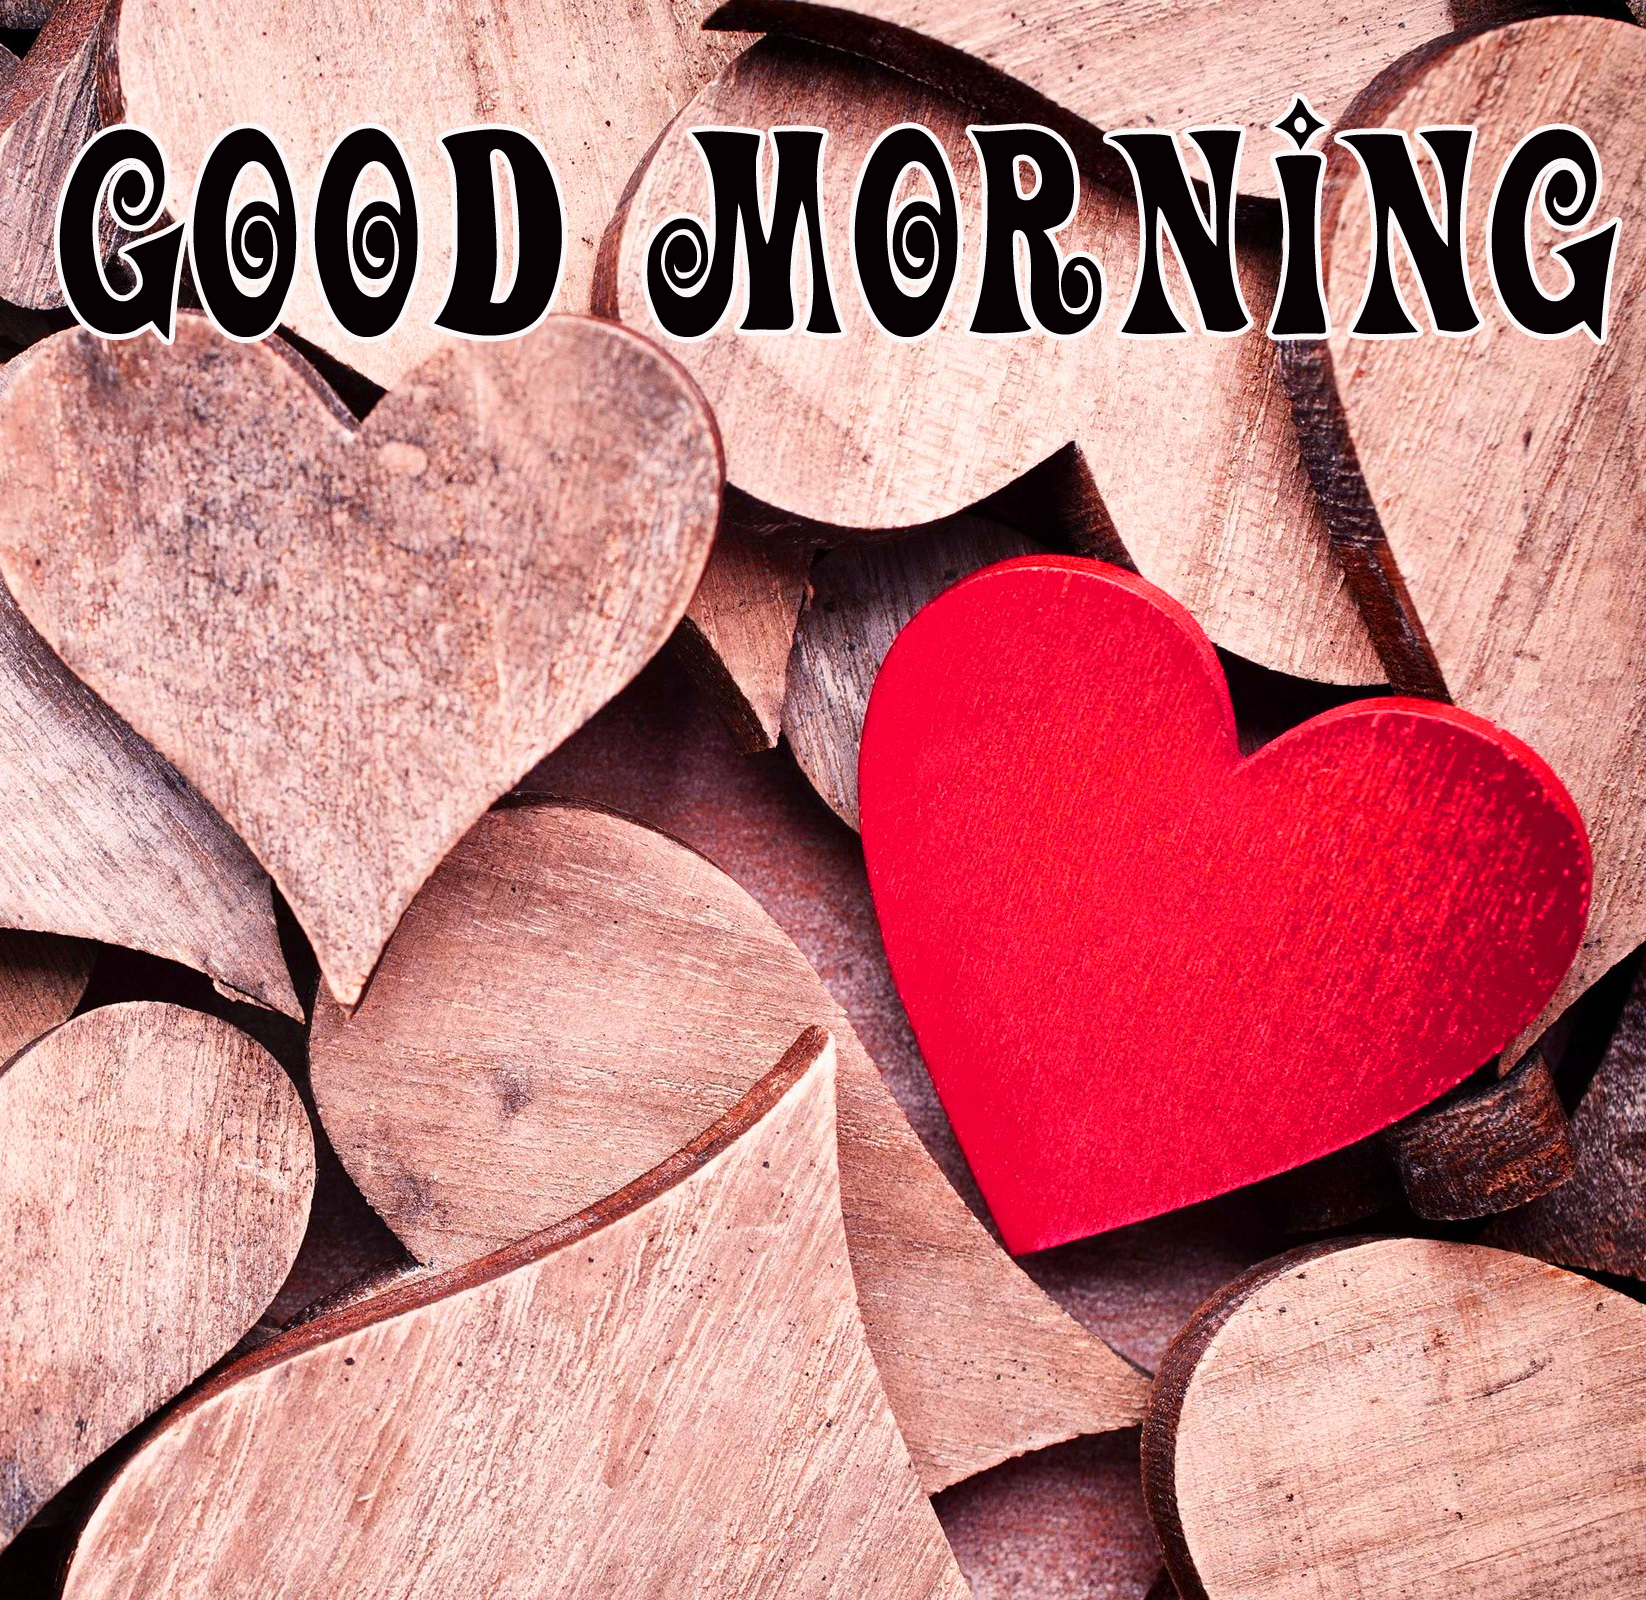 176+ Good morning wishes with heart Images Wallpaper pics for Lover